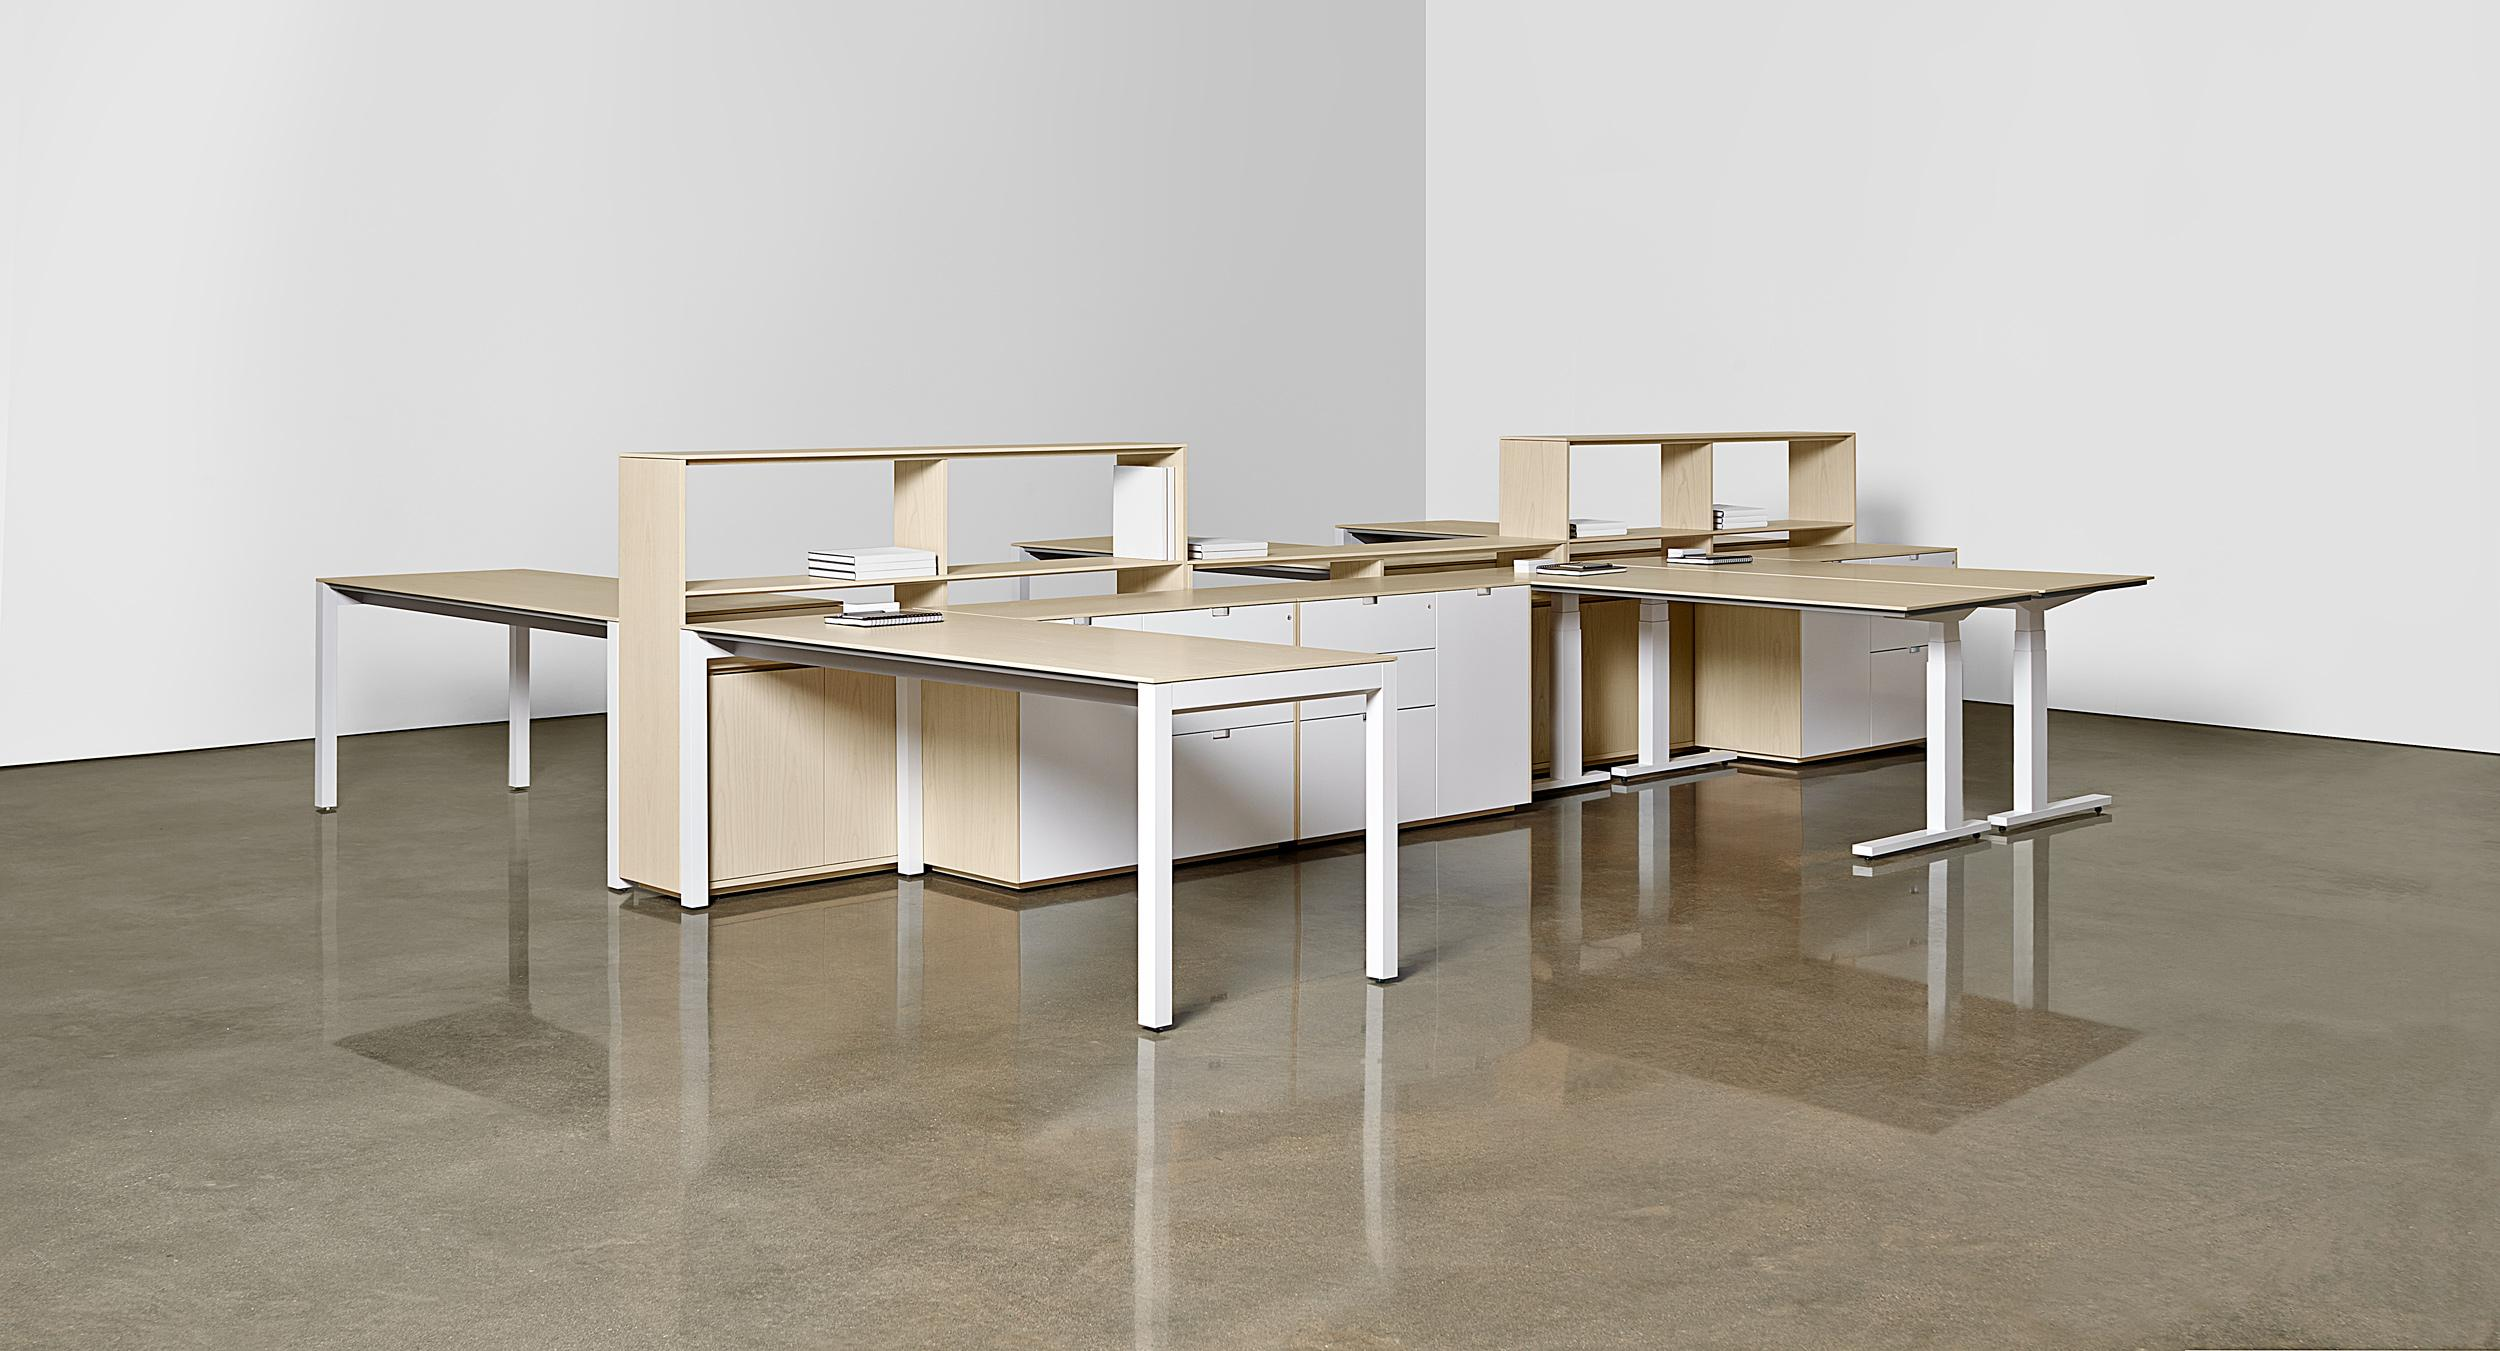 A centerline storage wall delivers universal power and data technology to a workspace that can be easily reconfigured.